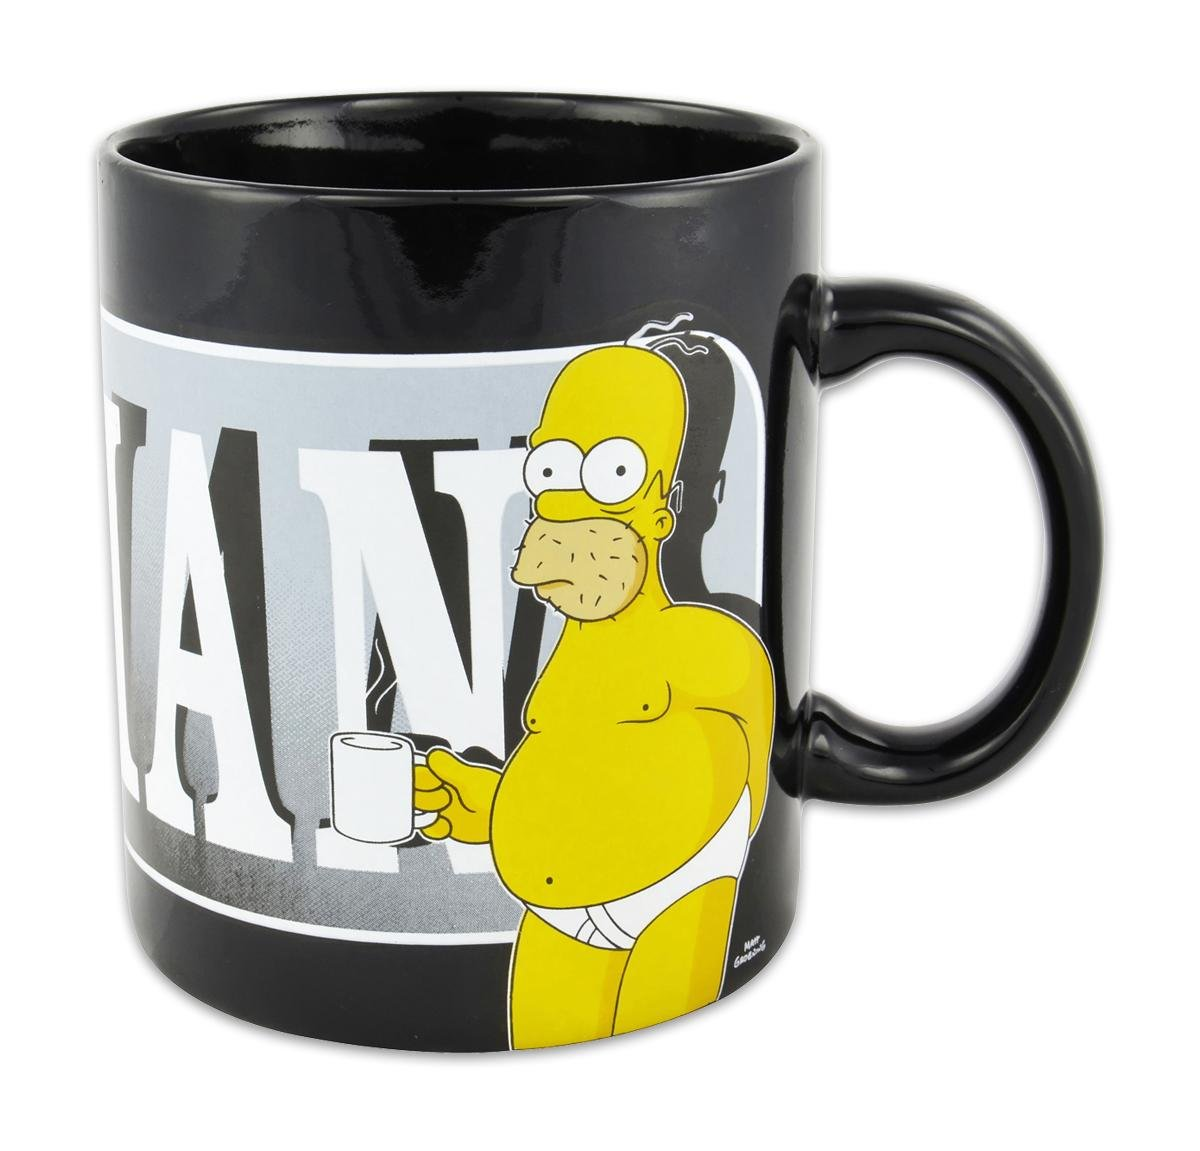 Los Simpson - XXL Taza diseño de Homer, 850 ML https://amzn.to/2GvooXQ